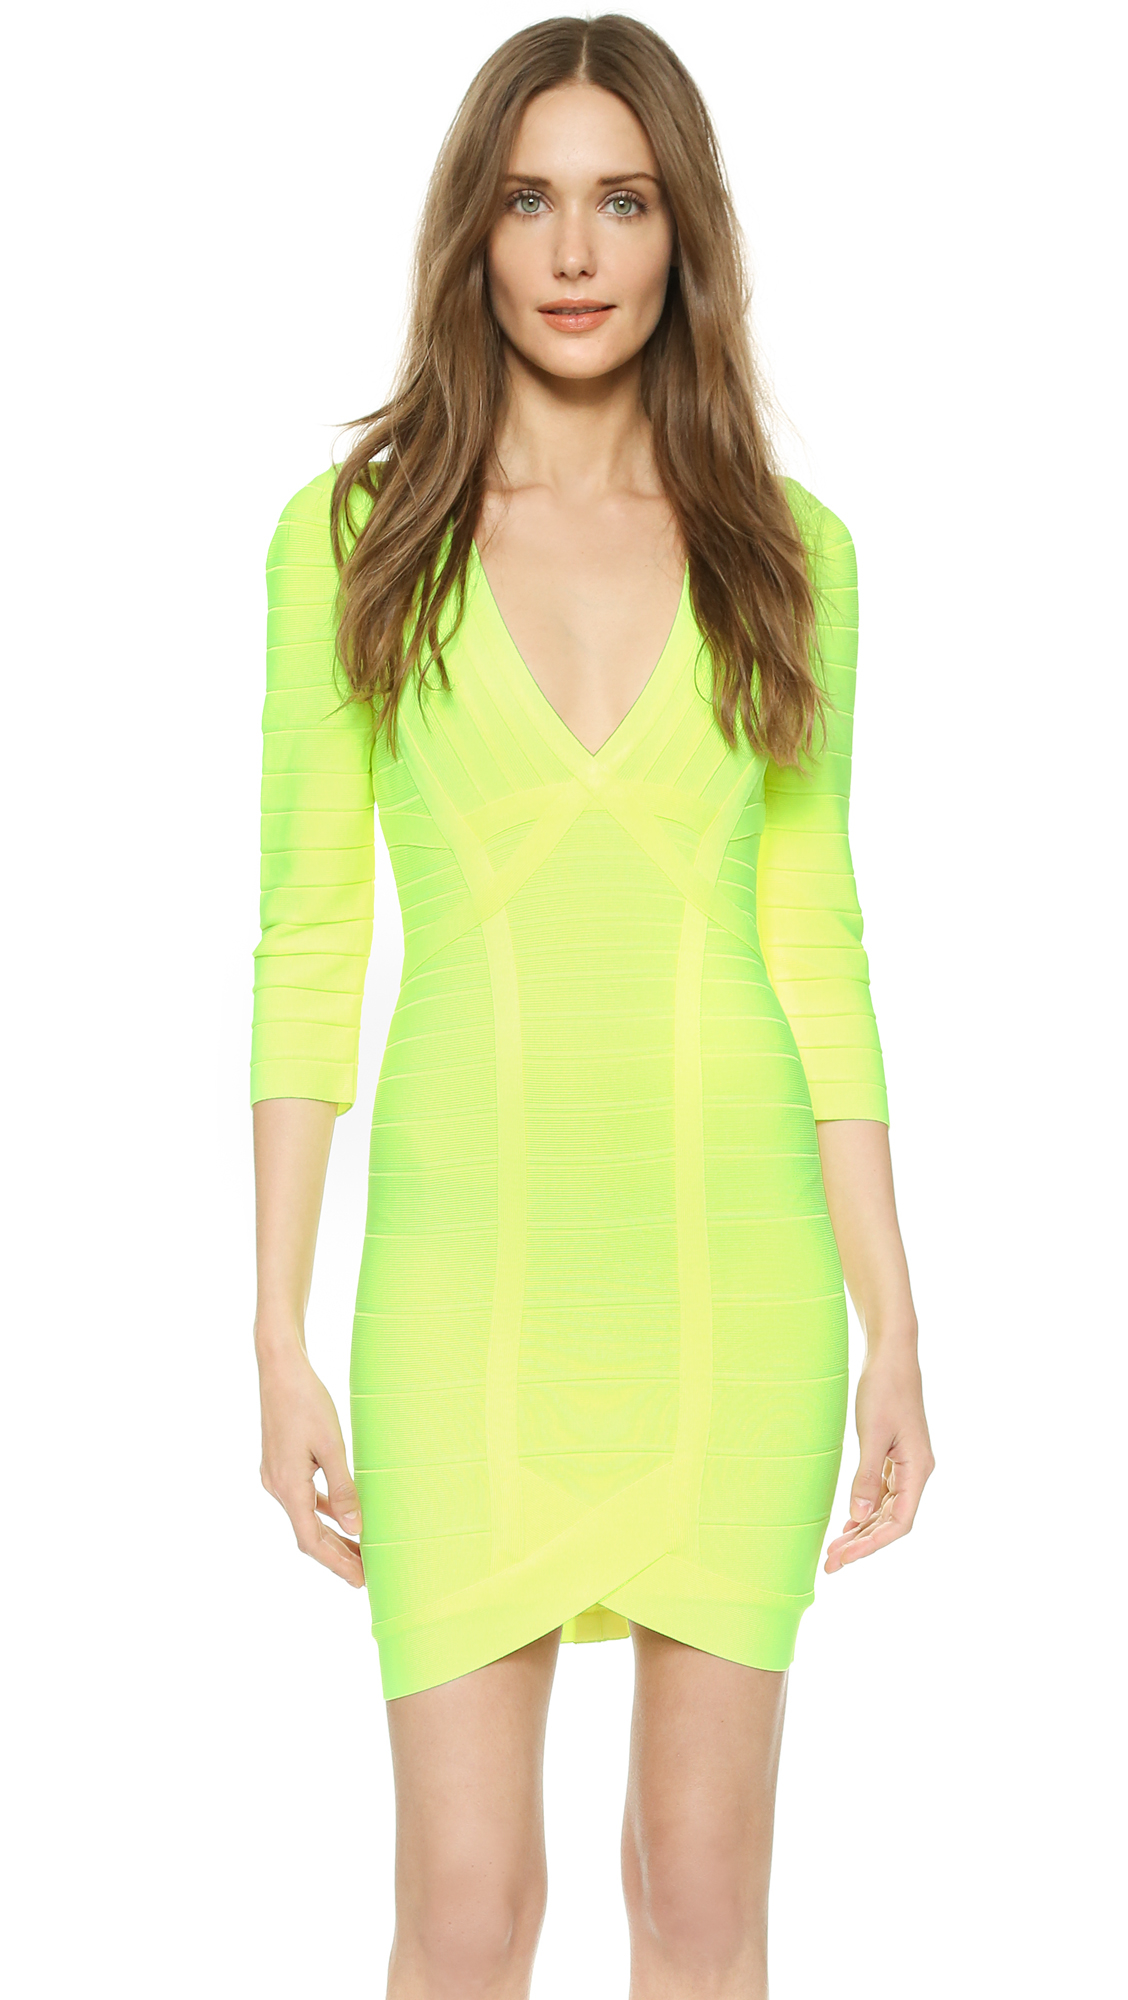 Lyst - Hervé Léger Nathalia Dress - Neon Yellow in Yellow